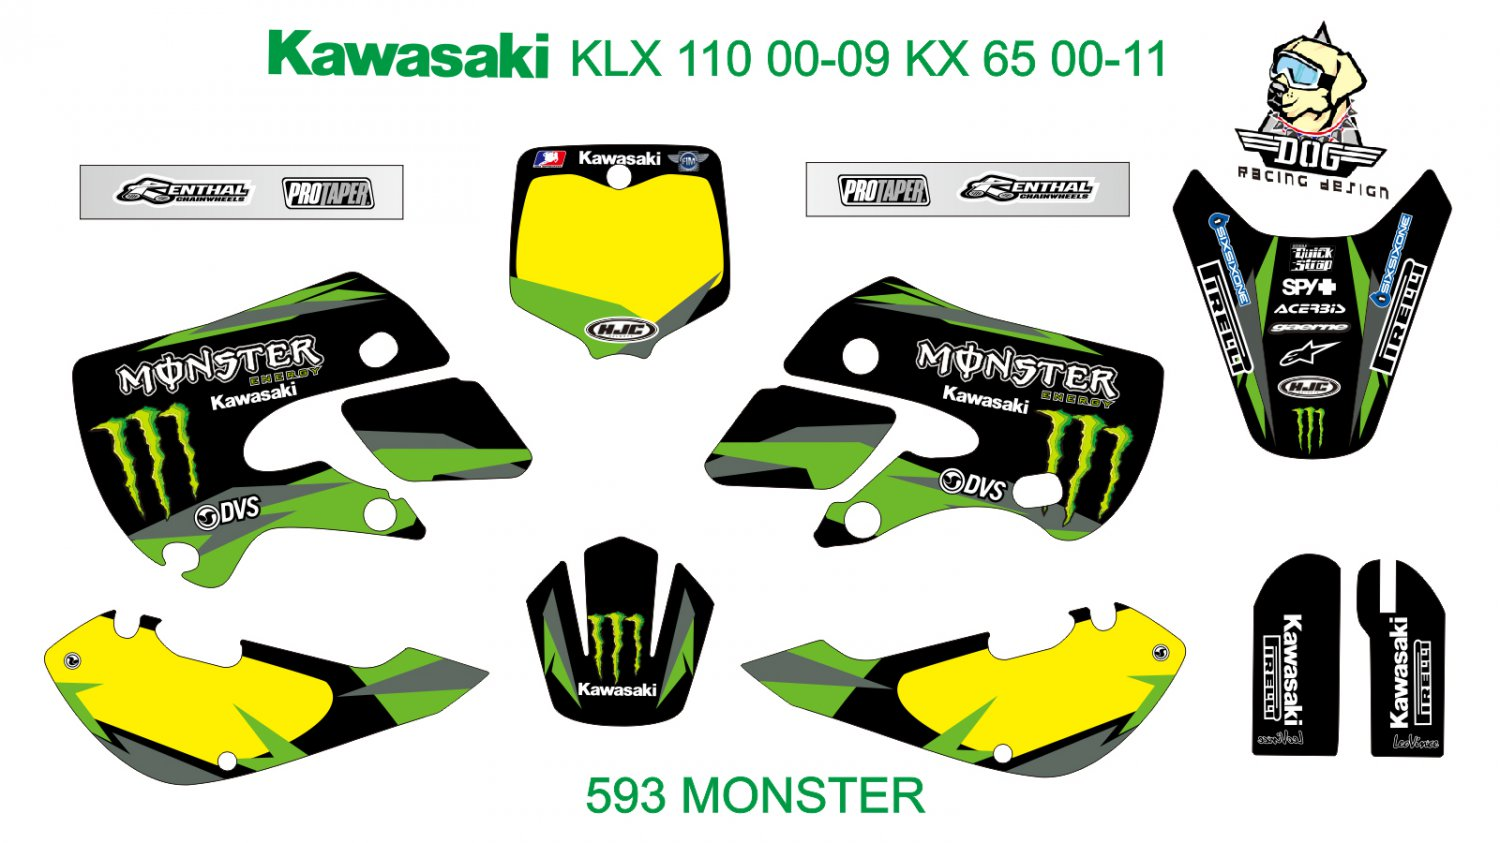 KAWASAKI KLX 110 2000-2009 KX 65 2000-2011 GRAPHIC DECAL KIT CODE.593